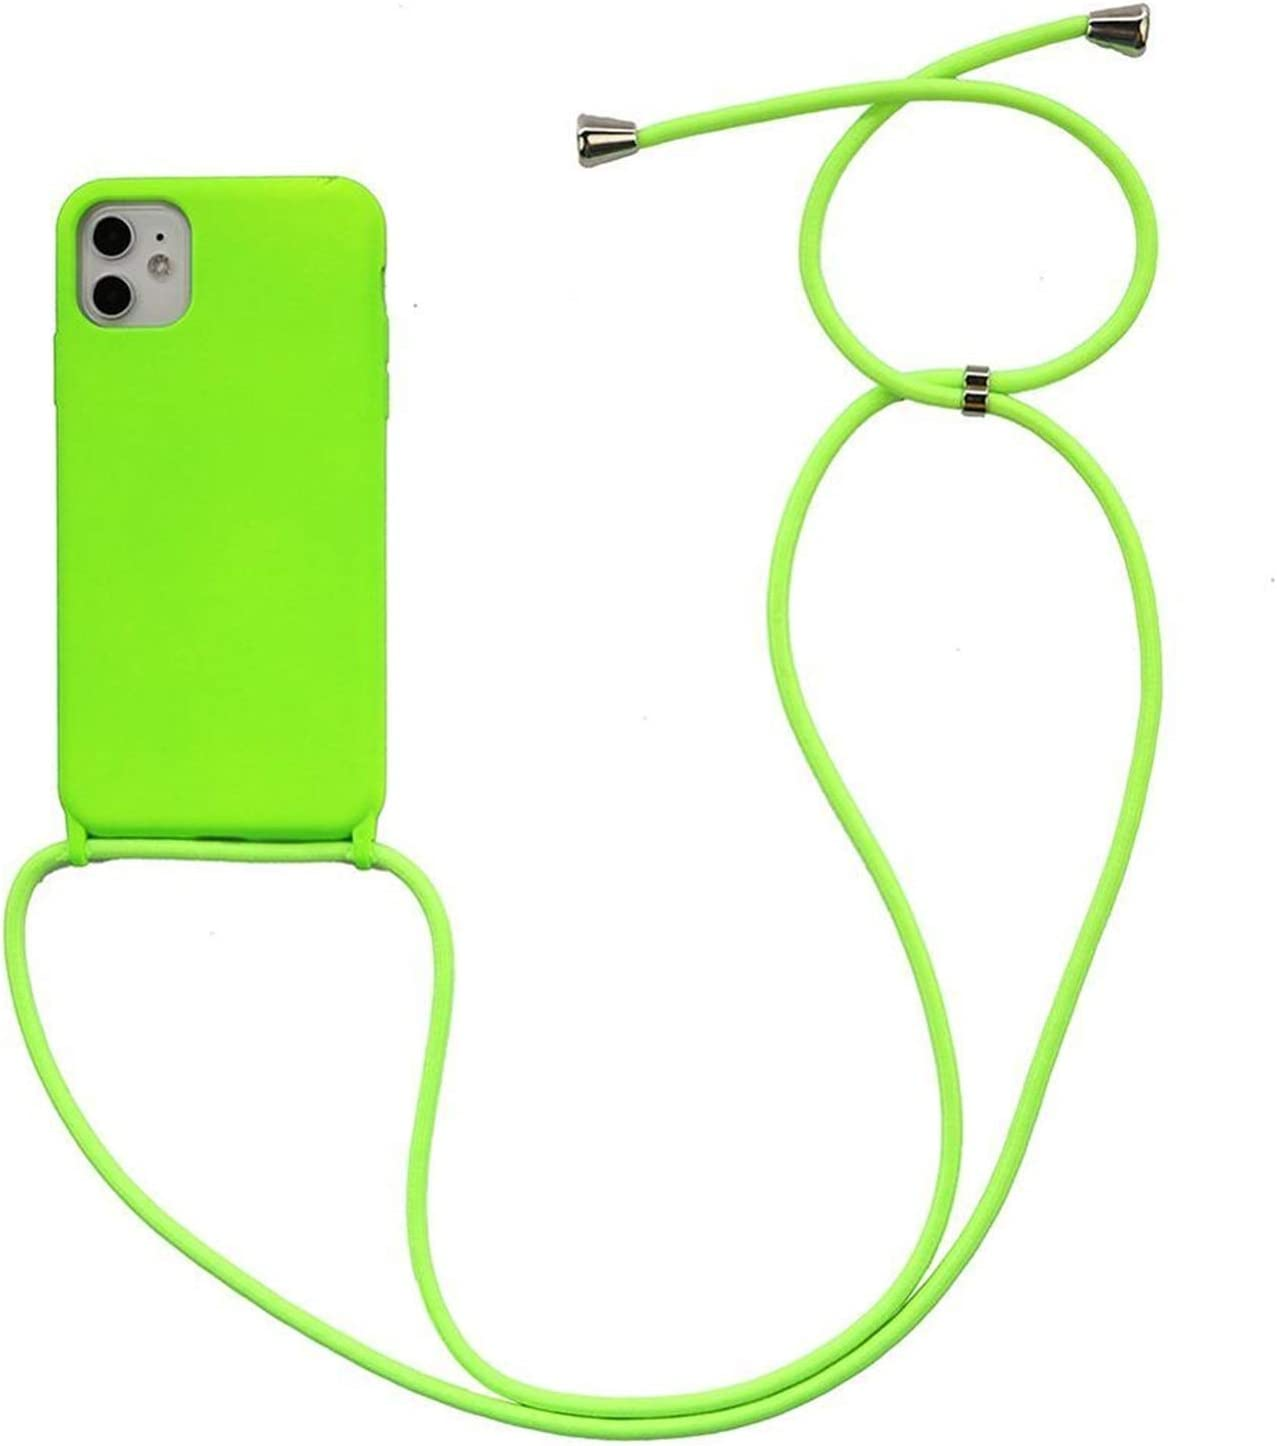 Zija Crossbody Necklace Holder Phone Case for iPhone 11 pro XS max Xr 6s 7 8 Plus Lanyard Silicone Case Cover with Cord Strap Rope (Color : Bright Green, Material : for 11 pro max)